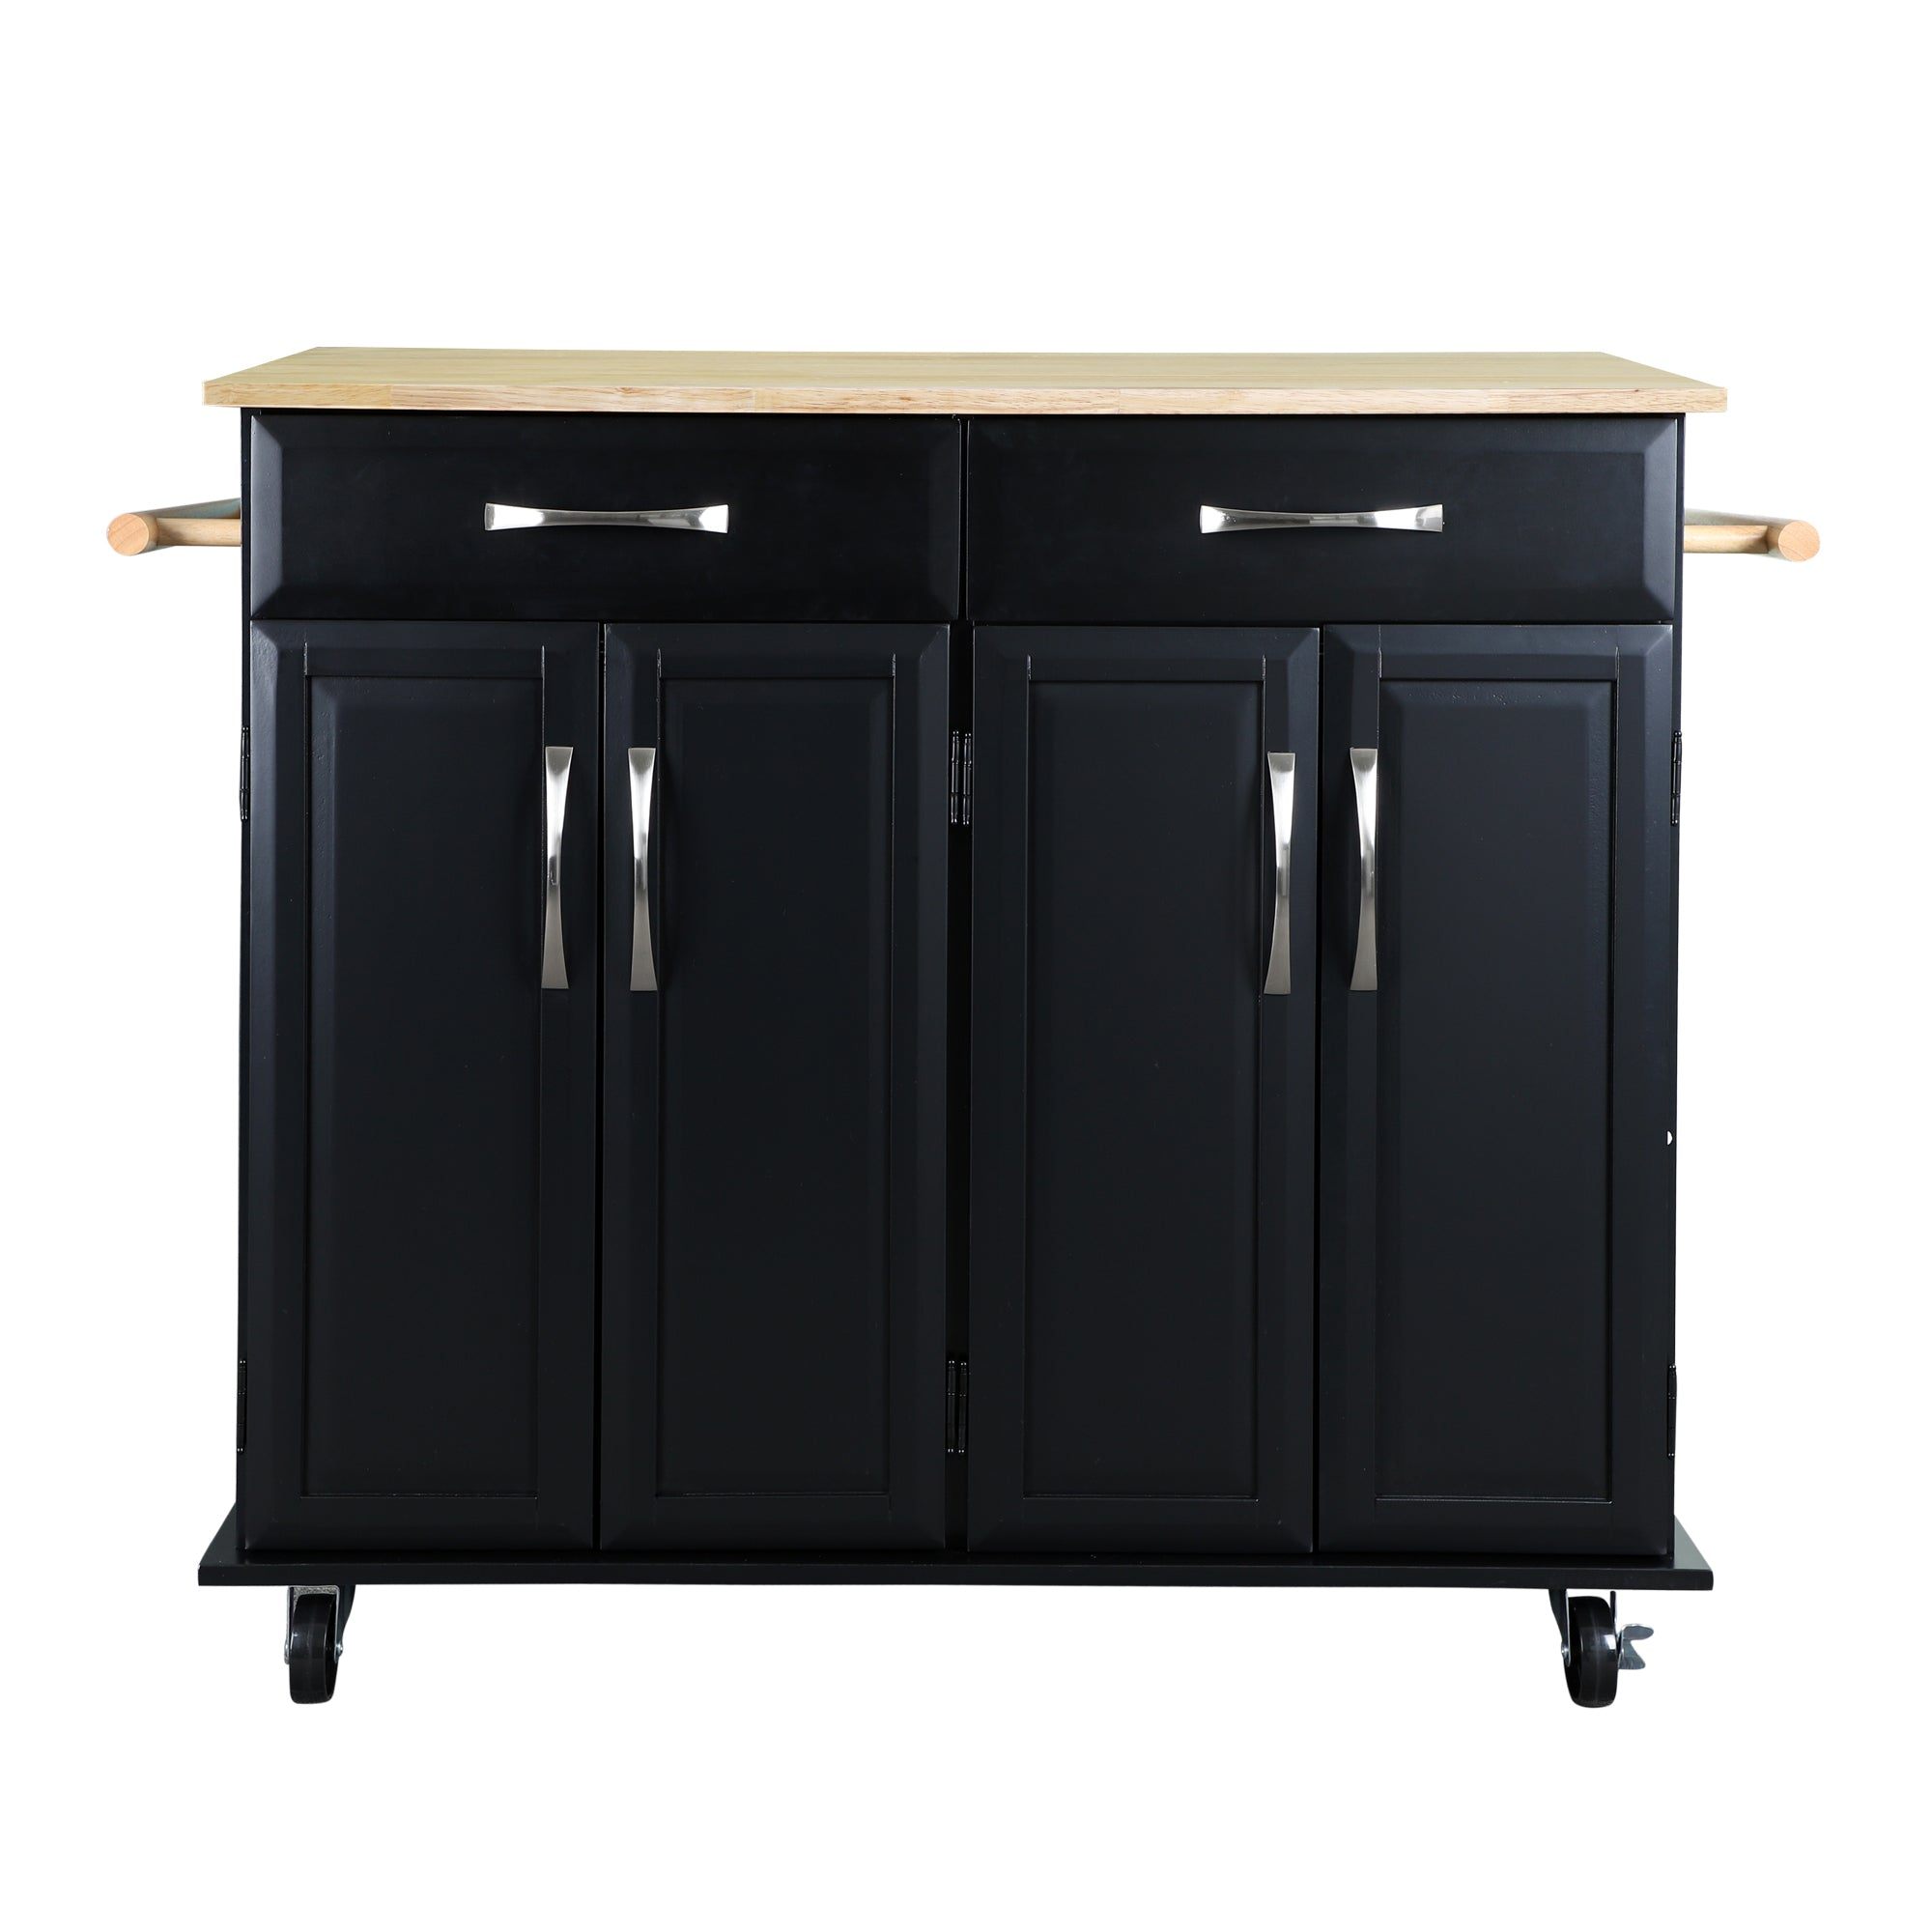 Loft97 Kitchen Cart with Storage Cabinets, Handles, Rolling Kitchen Island, Black